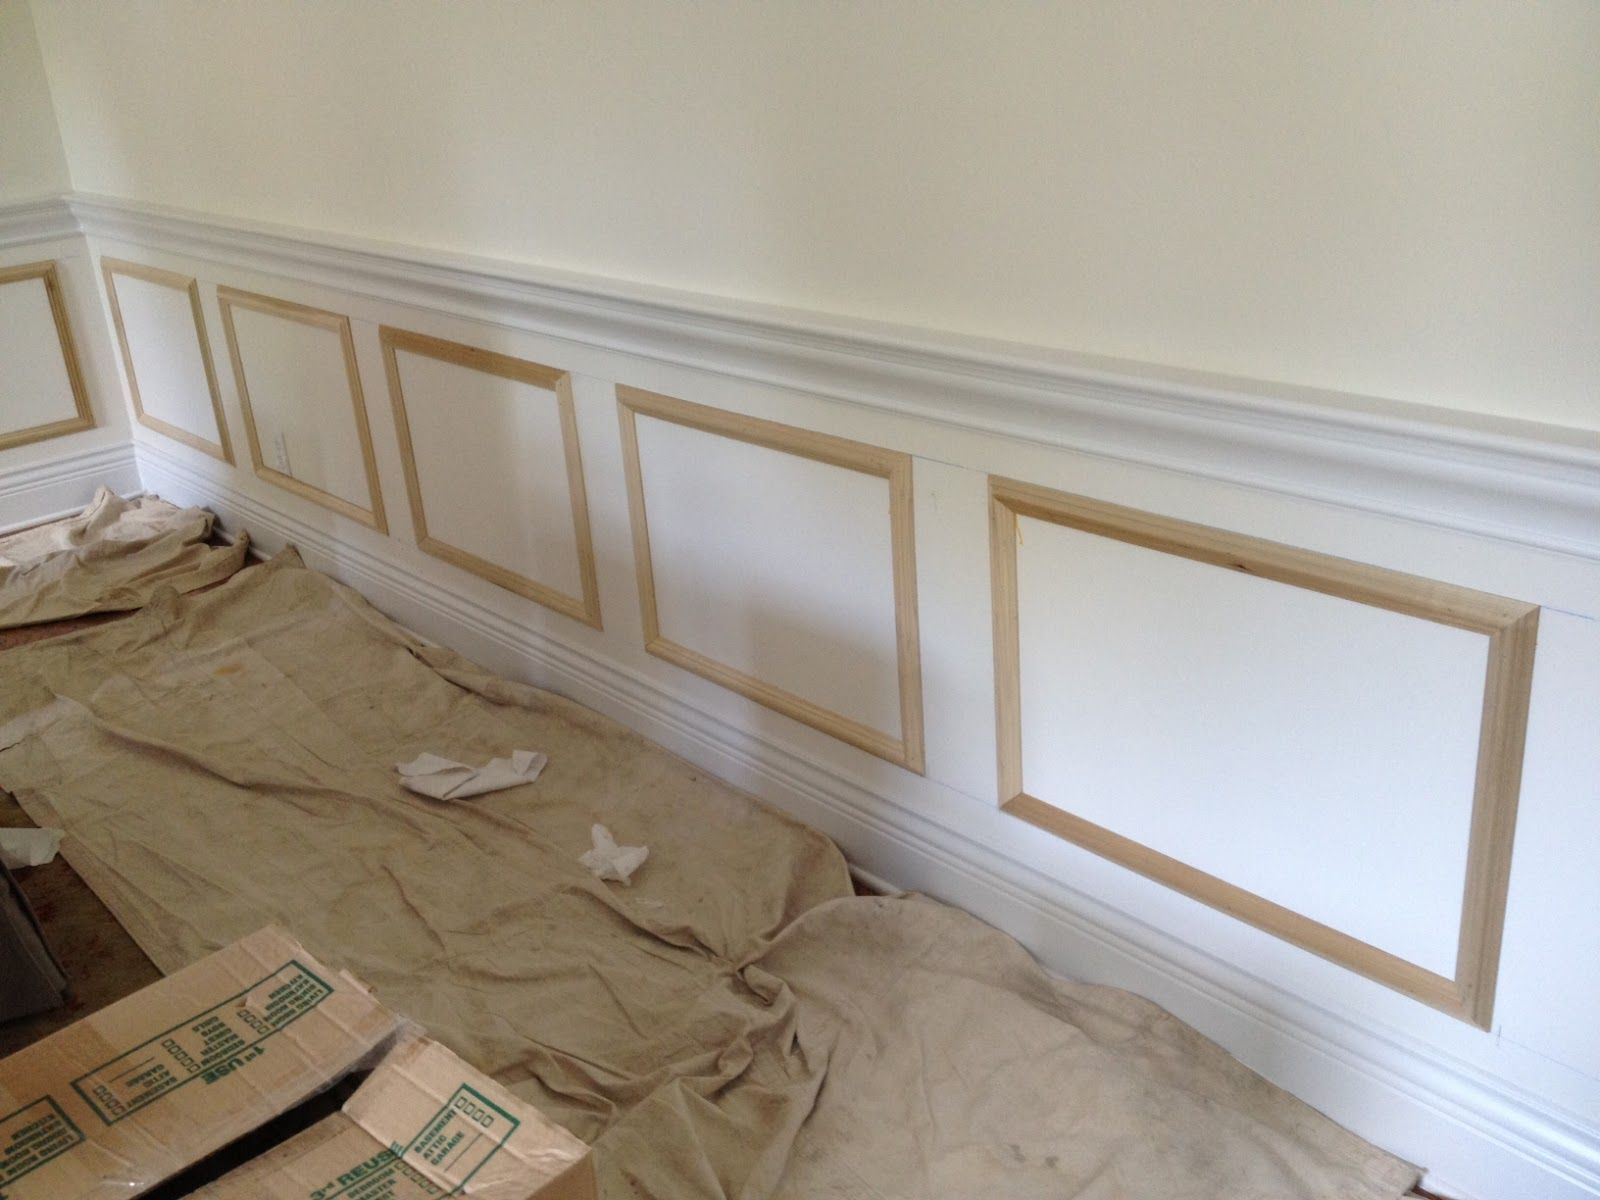 indoor faux wainscoting ideas with white wall faux wainscoting ideas choose the right wall paneling for your interior wainscotting wainscoting bathroom - Wainscoting Design Ideas